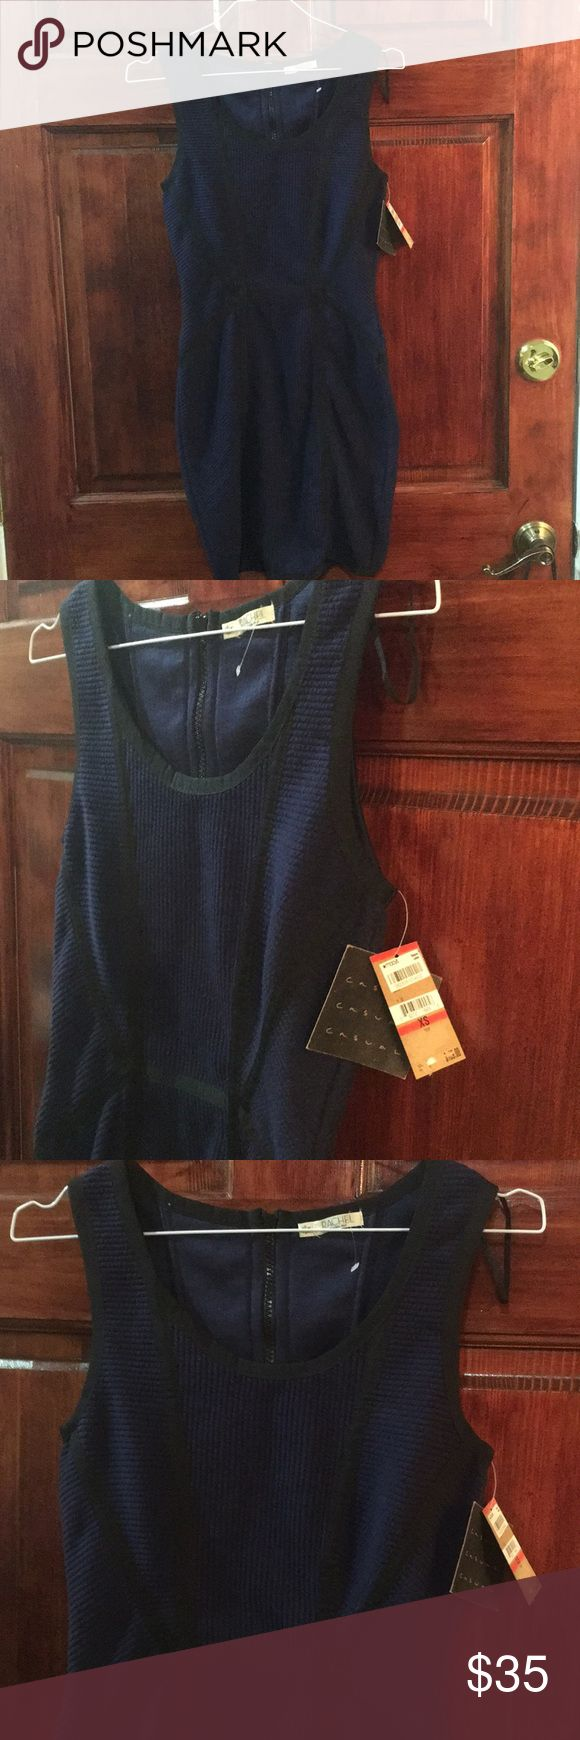 Navy and black bodycon dress NWT from Rachel Roy Very sexy NWT navy and black fitted dress from Rachel Roy. Size xs RACHEL Rachel Roy Dresses Mini